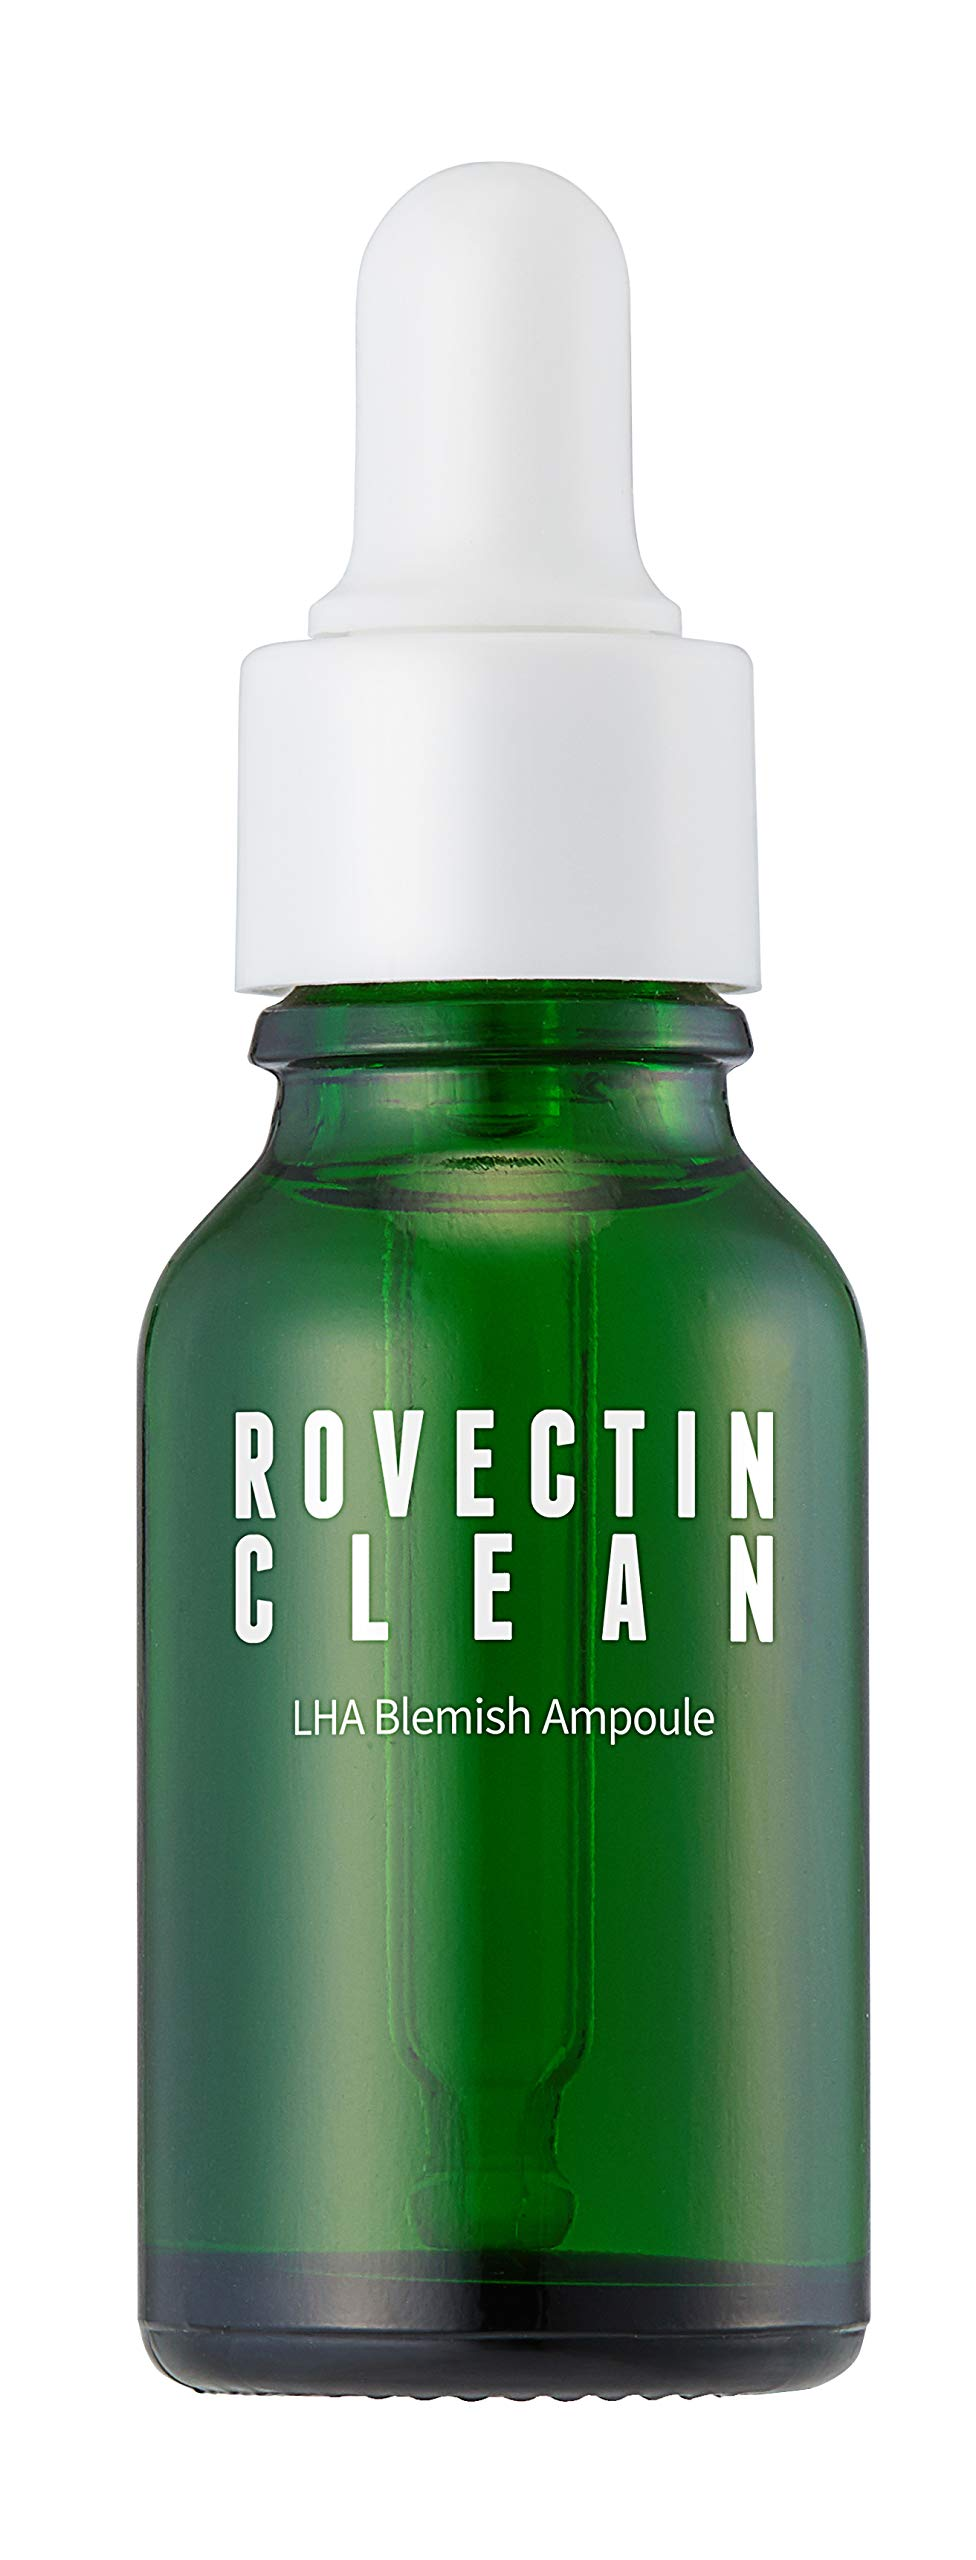 [Rovectin] Clean LHA Blemish Ampoule - Gentle and Daily Anti-Aging Ampoule with Neroli (0.51 fl.oz, 15ml)